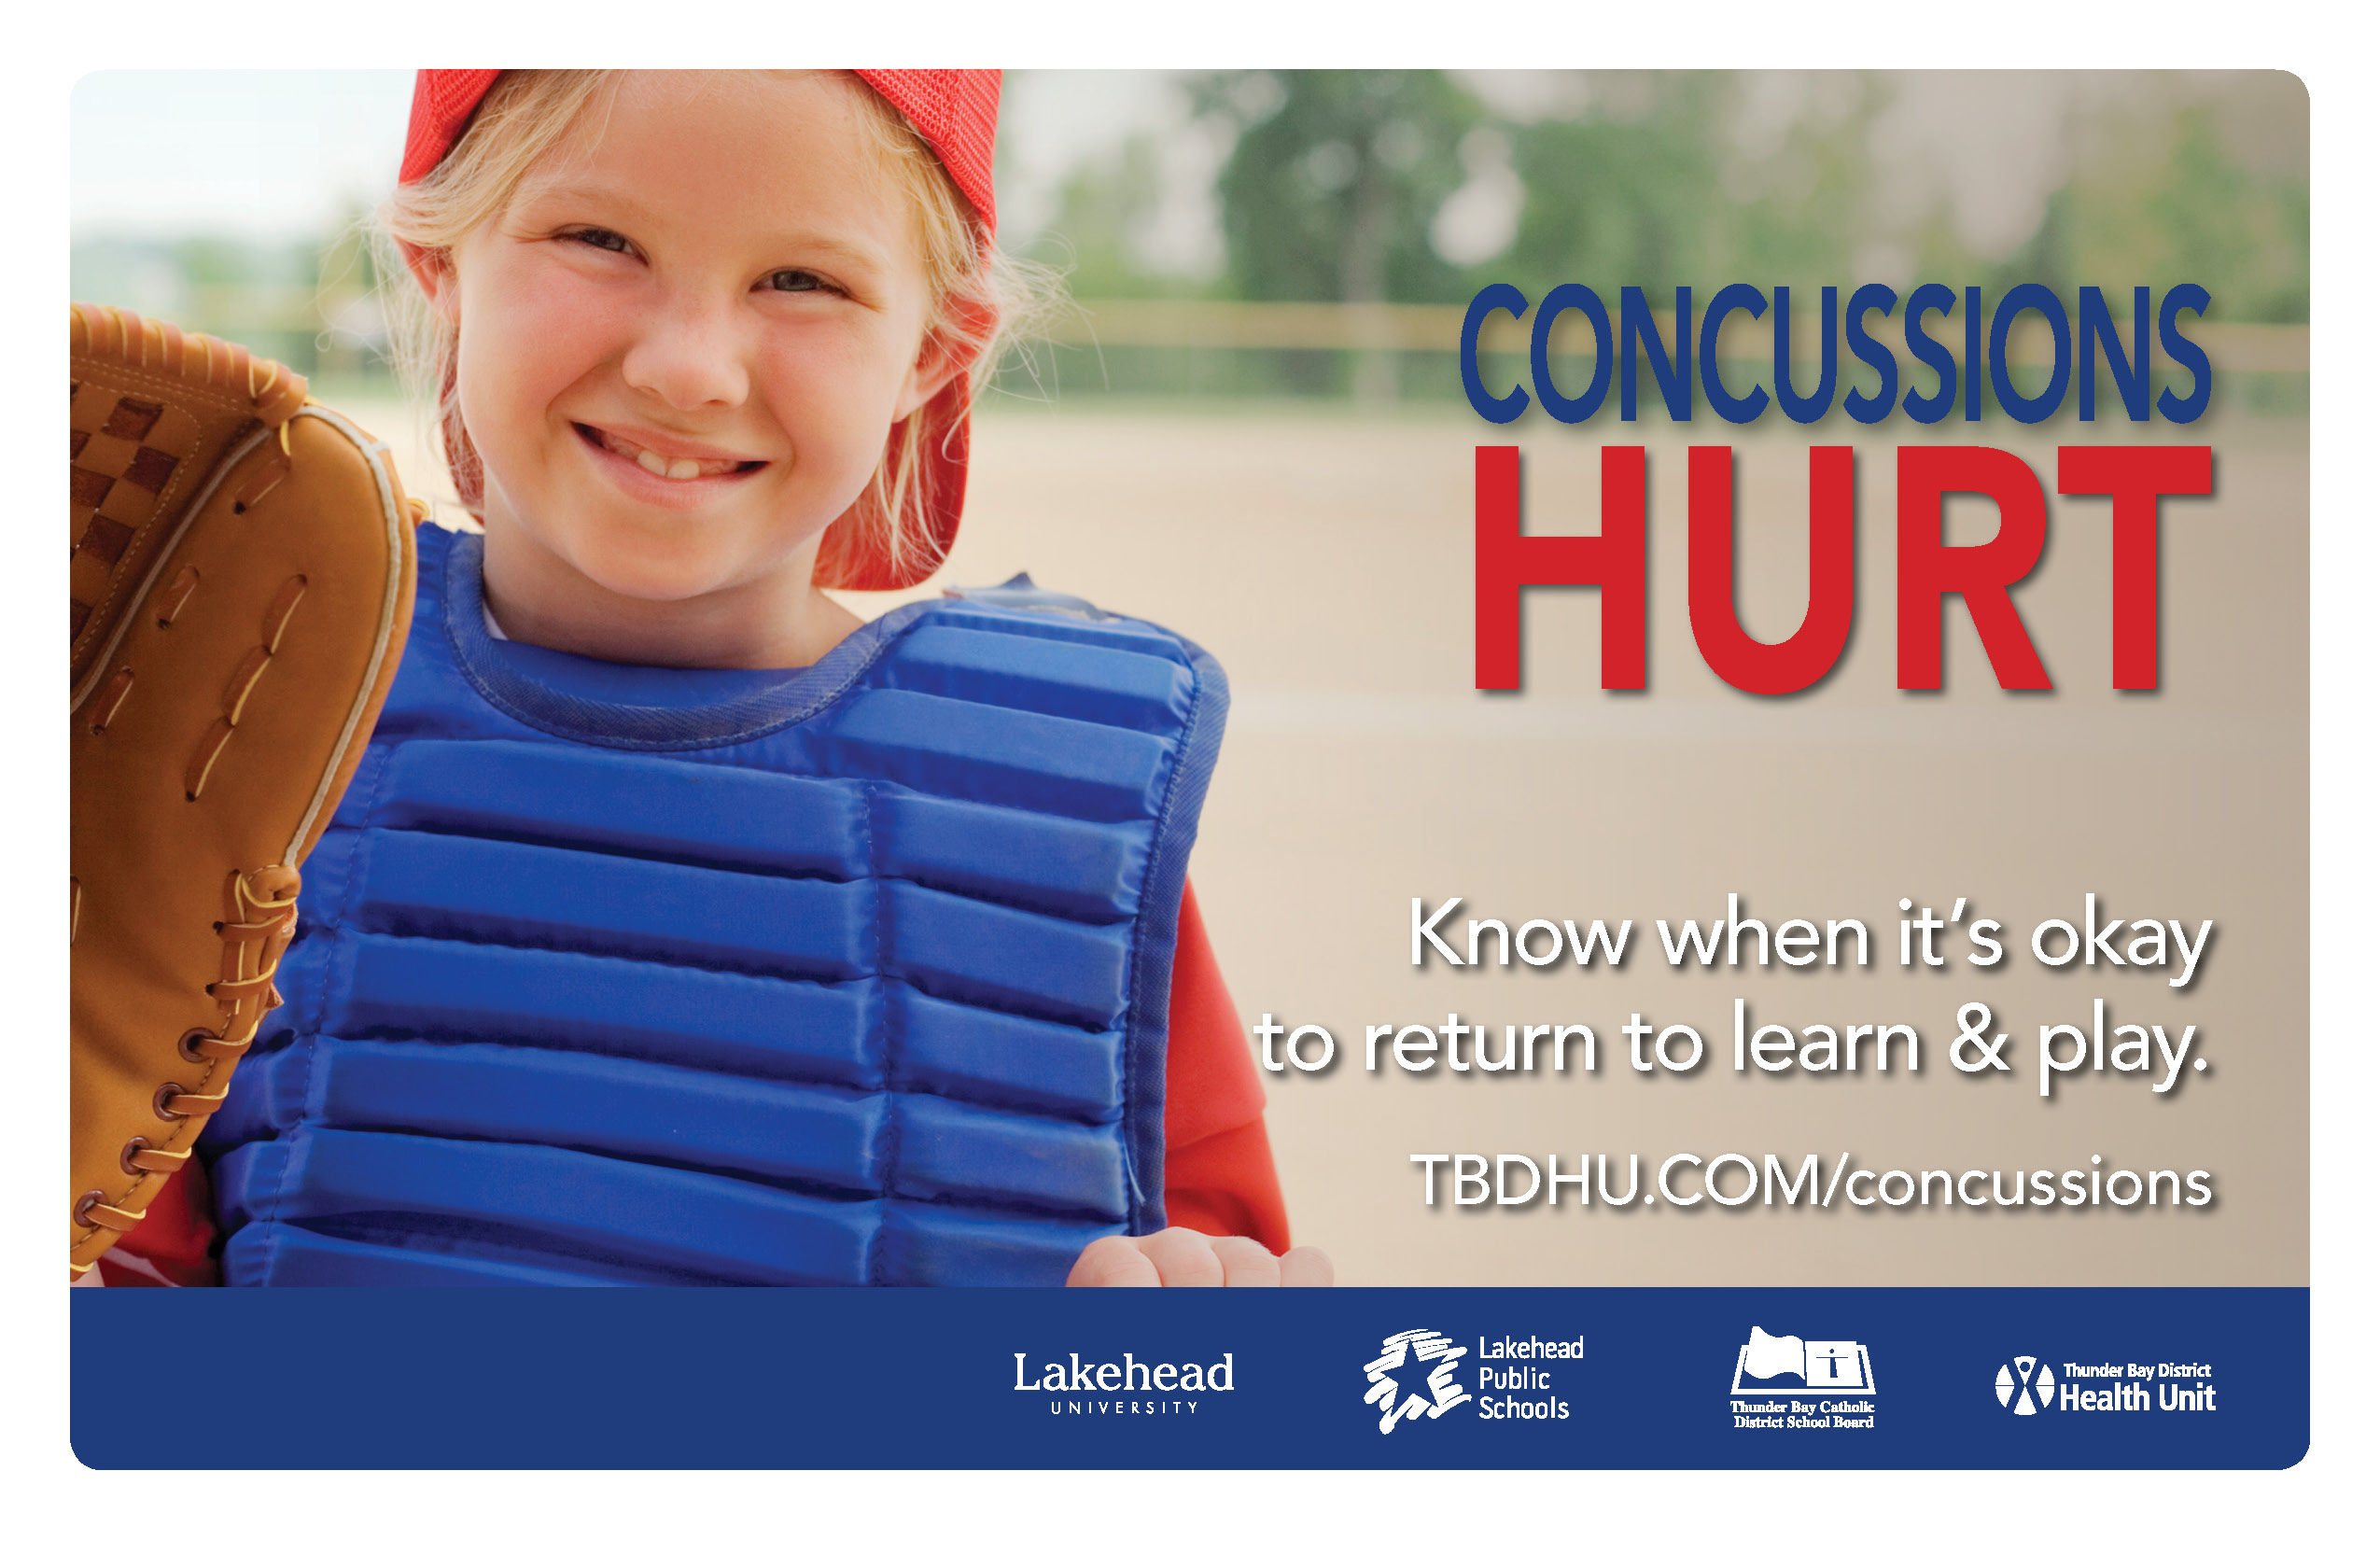 Concussions Hurt - young girl, batcatcher